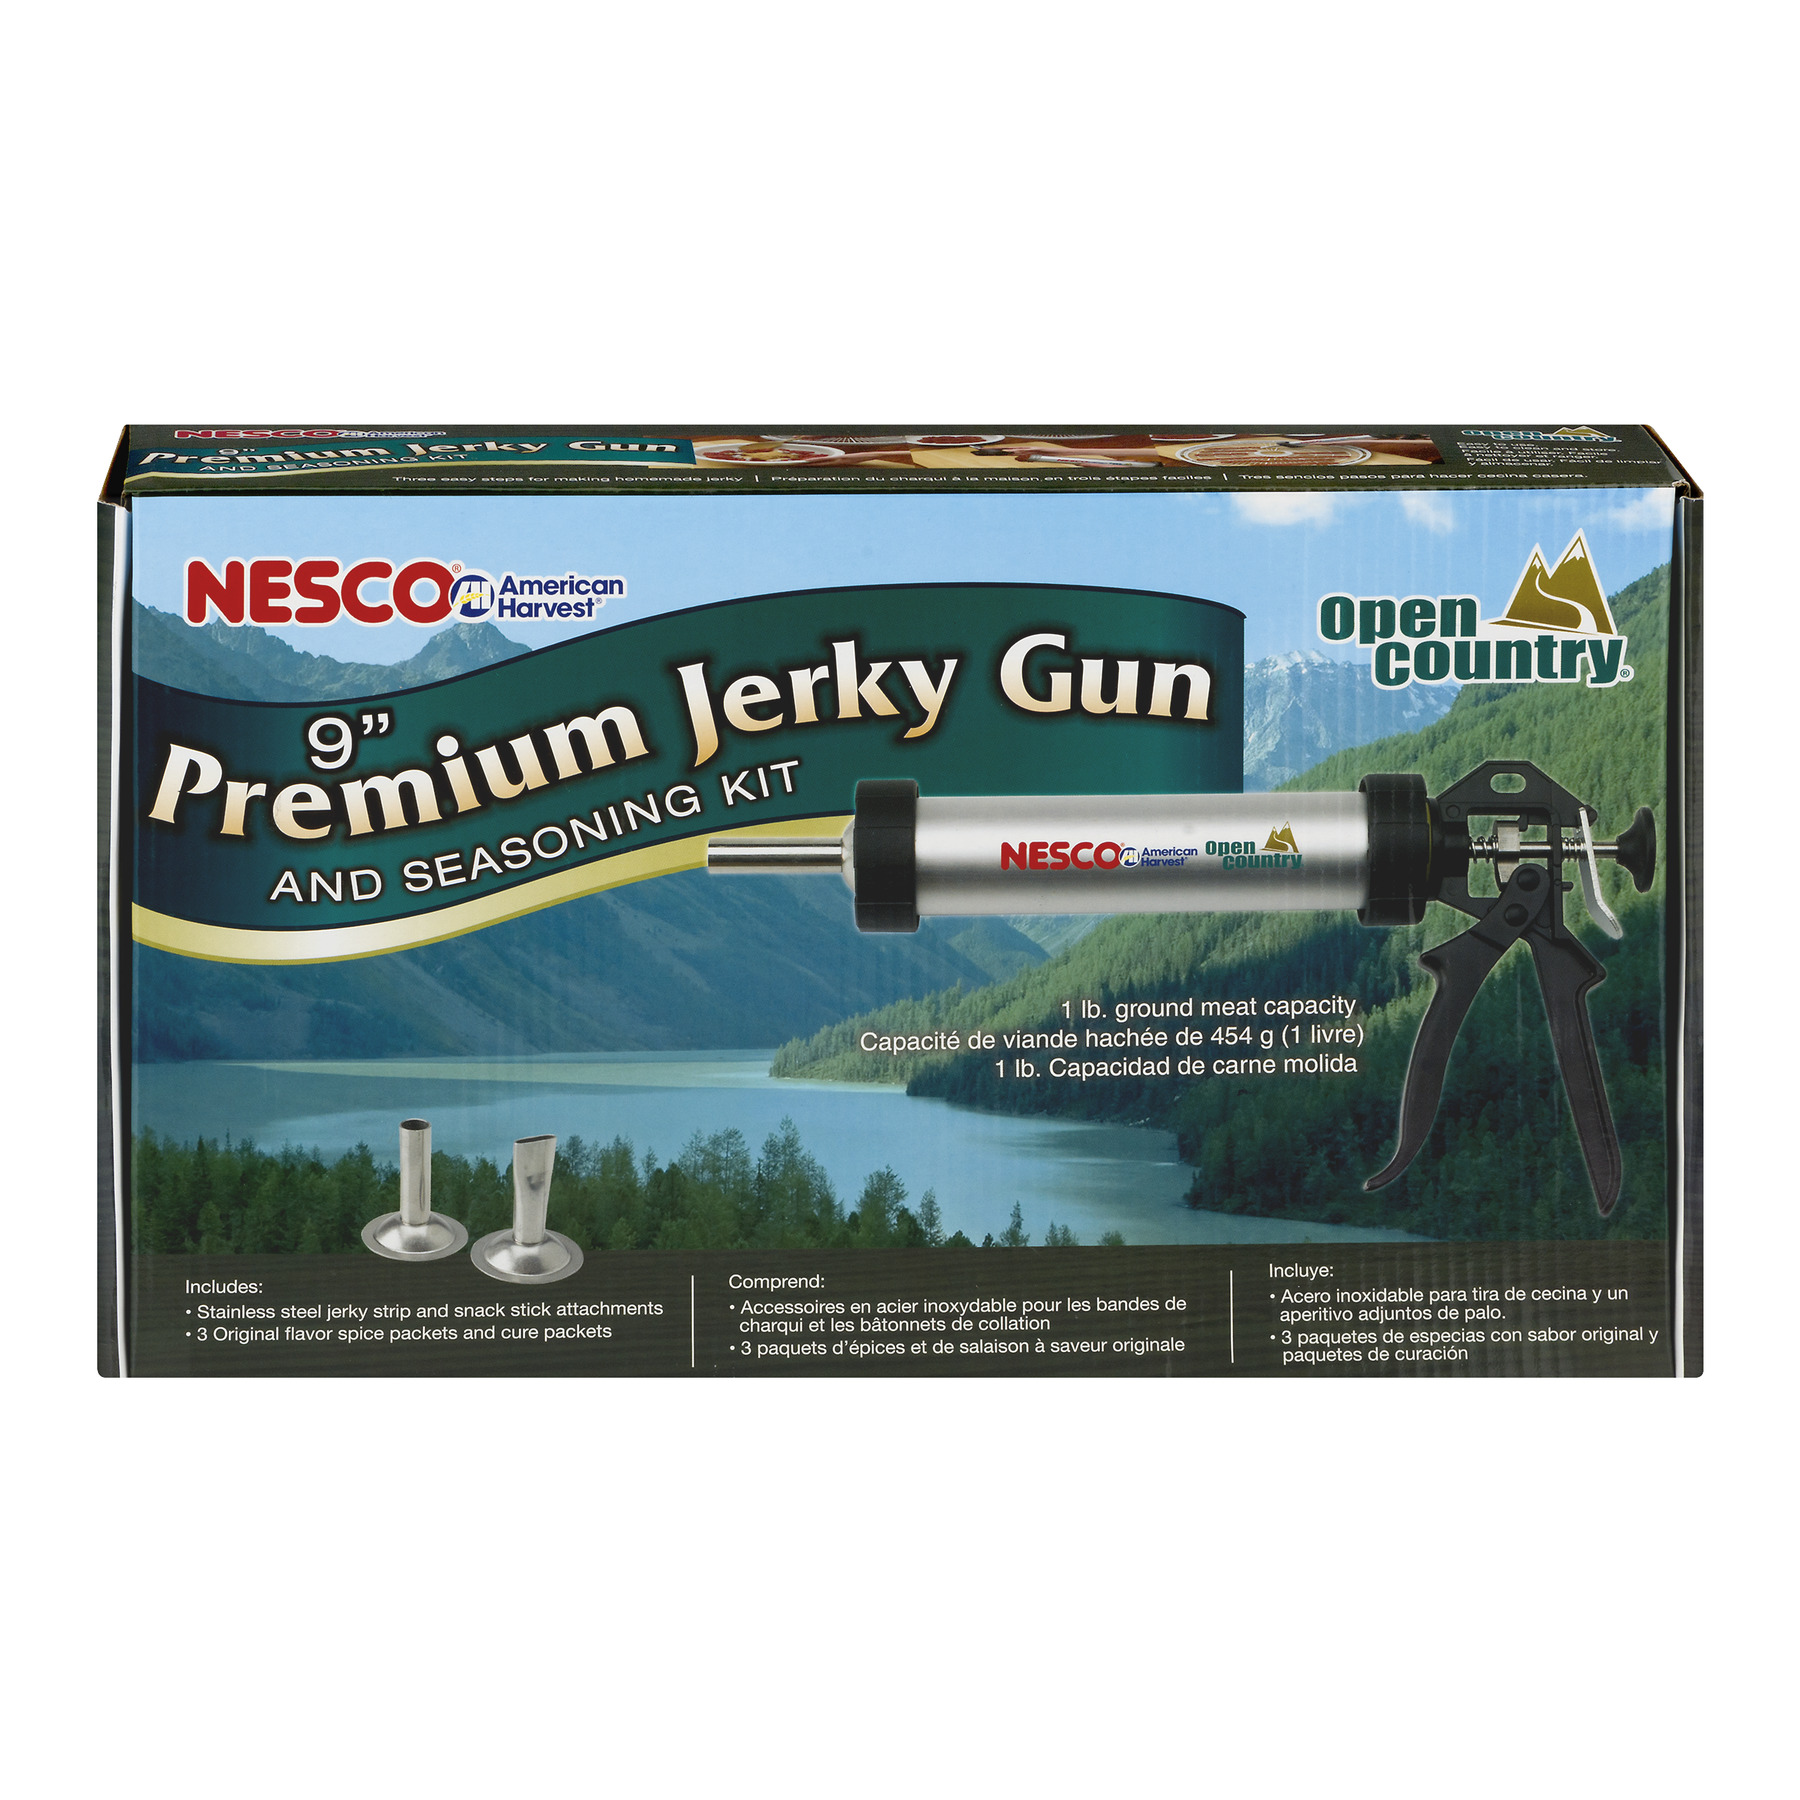 Nesco BJX-9 Jerky Works Kit 9-in. Aluminum Jerky Gun